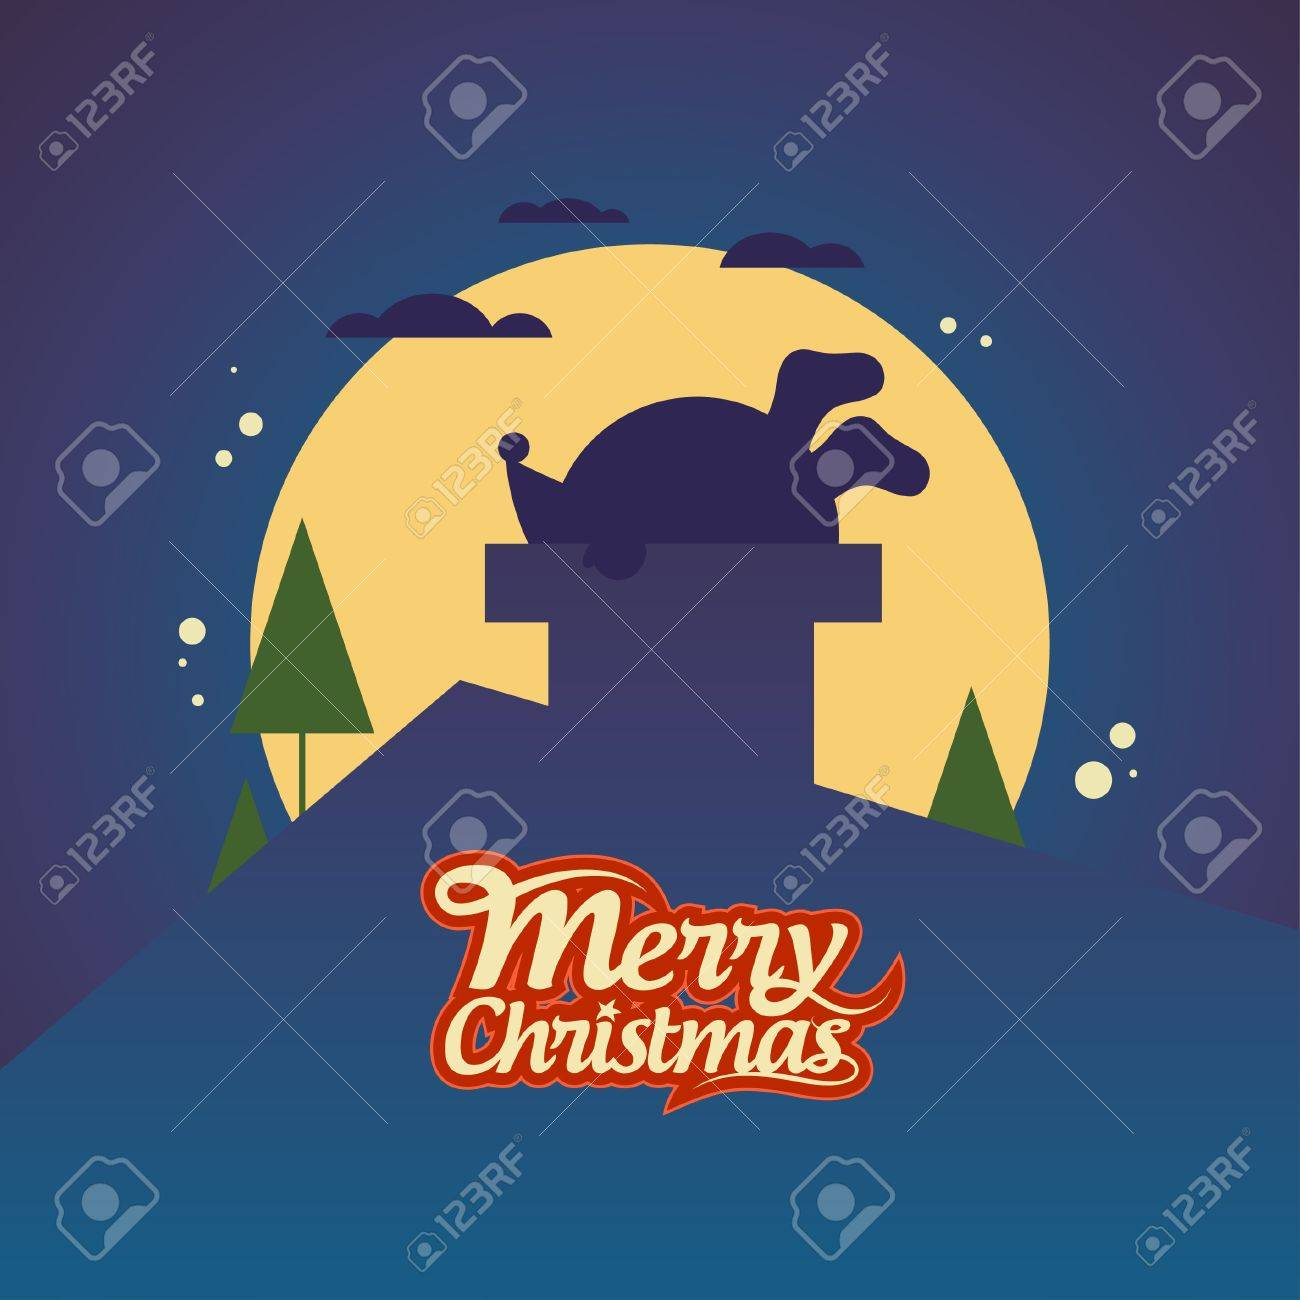 Christmas card with Santa Claus stuck in a chimney. Stock Vector - 16527812